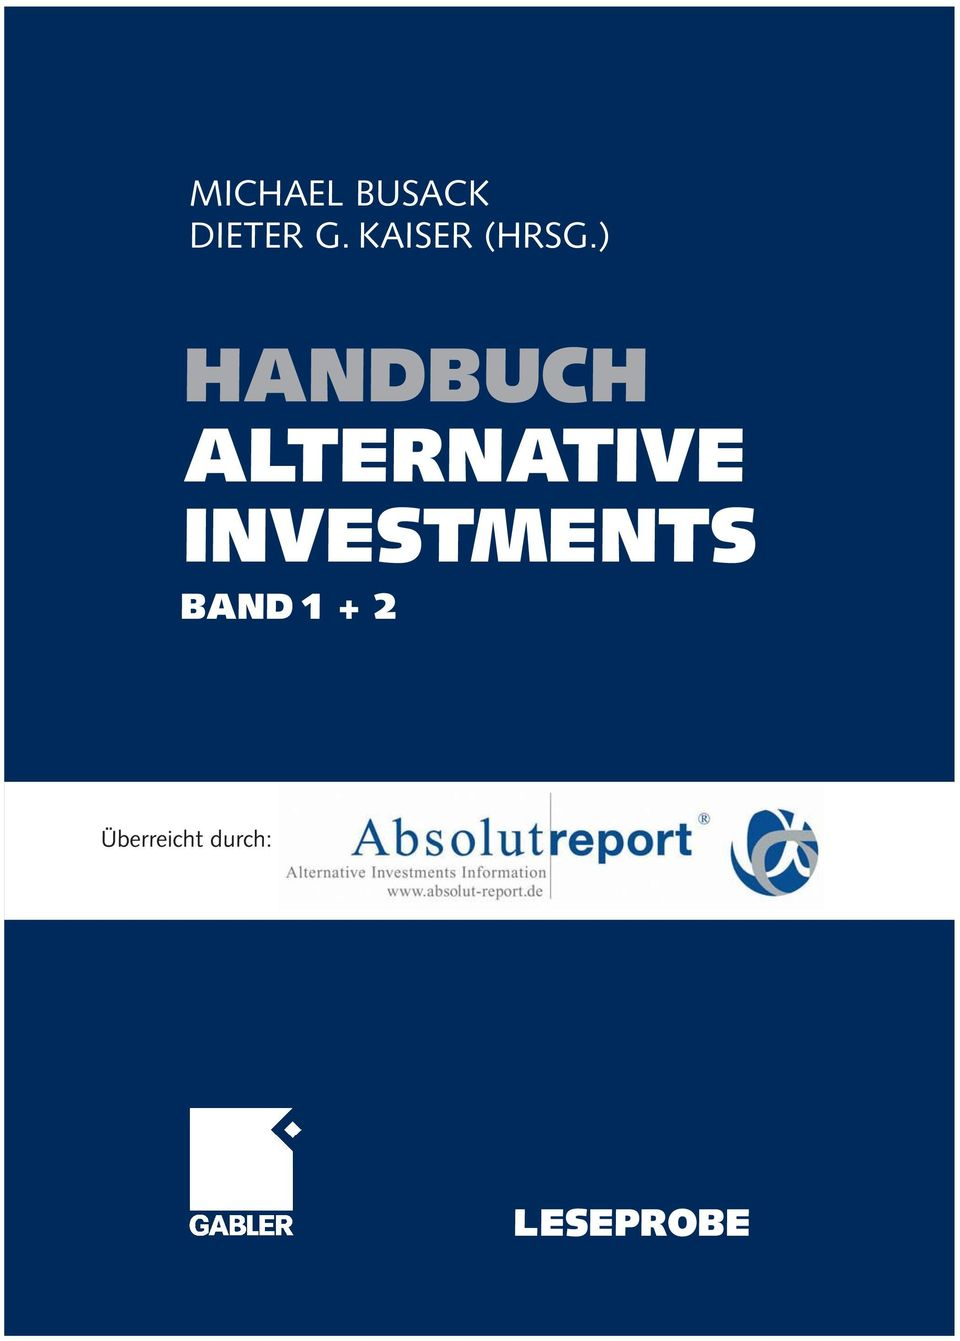 ) HANDBUCH ALTERNATIVE